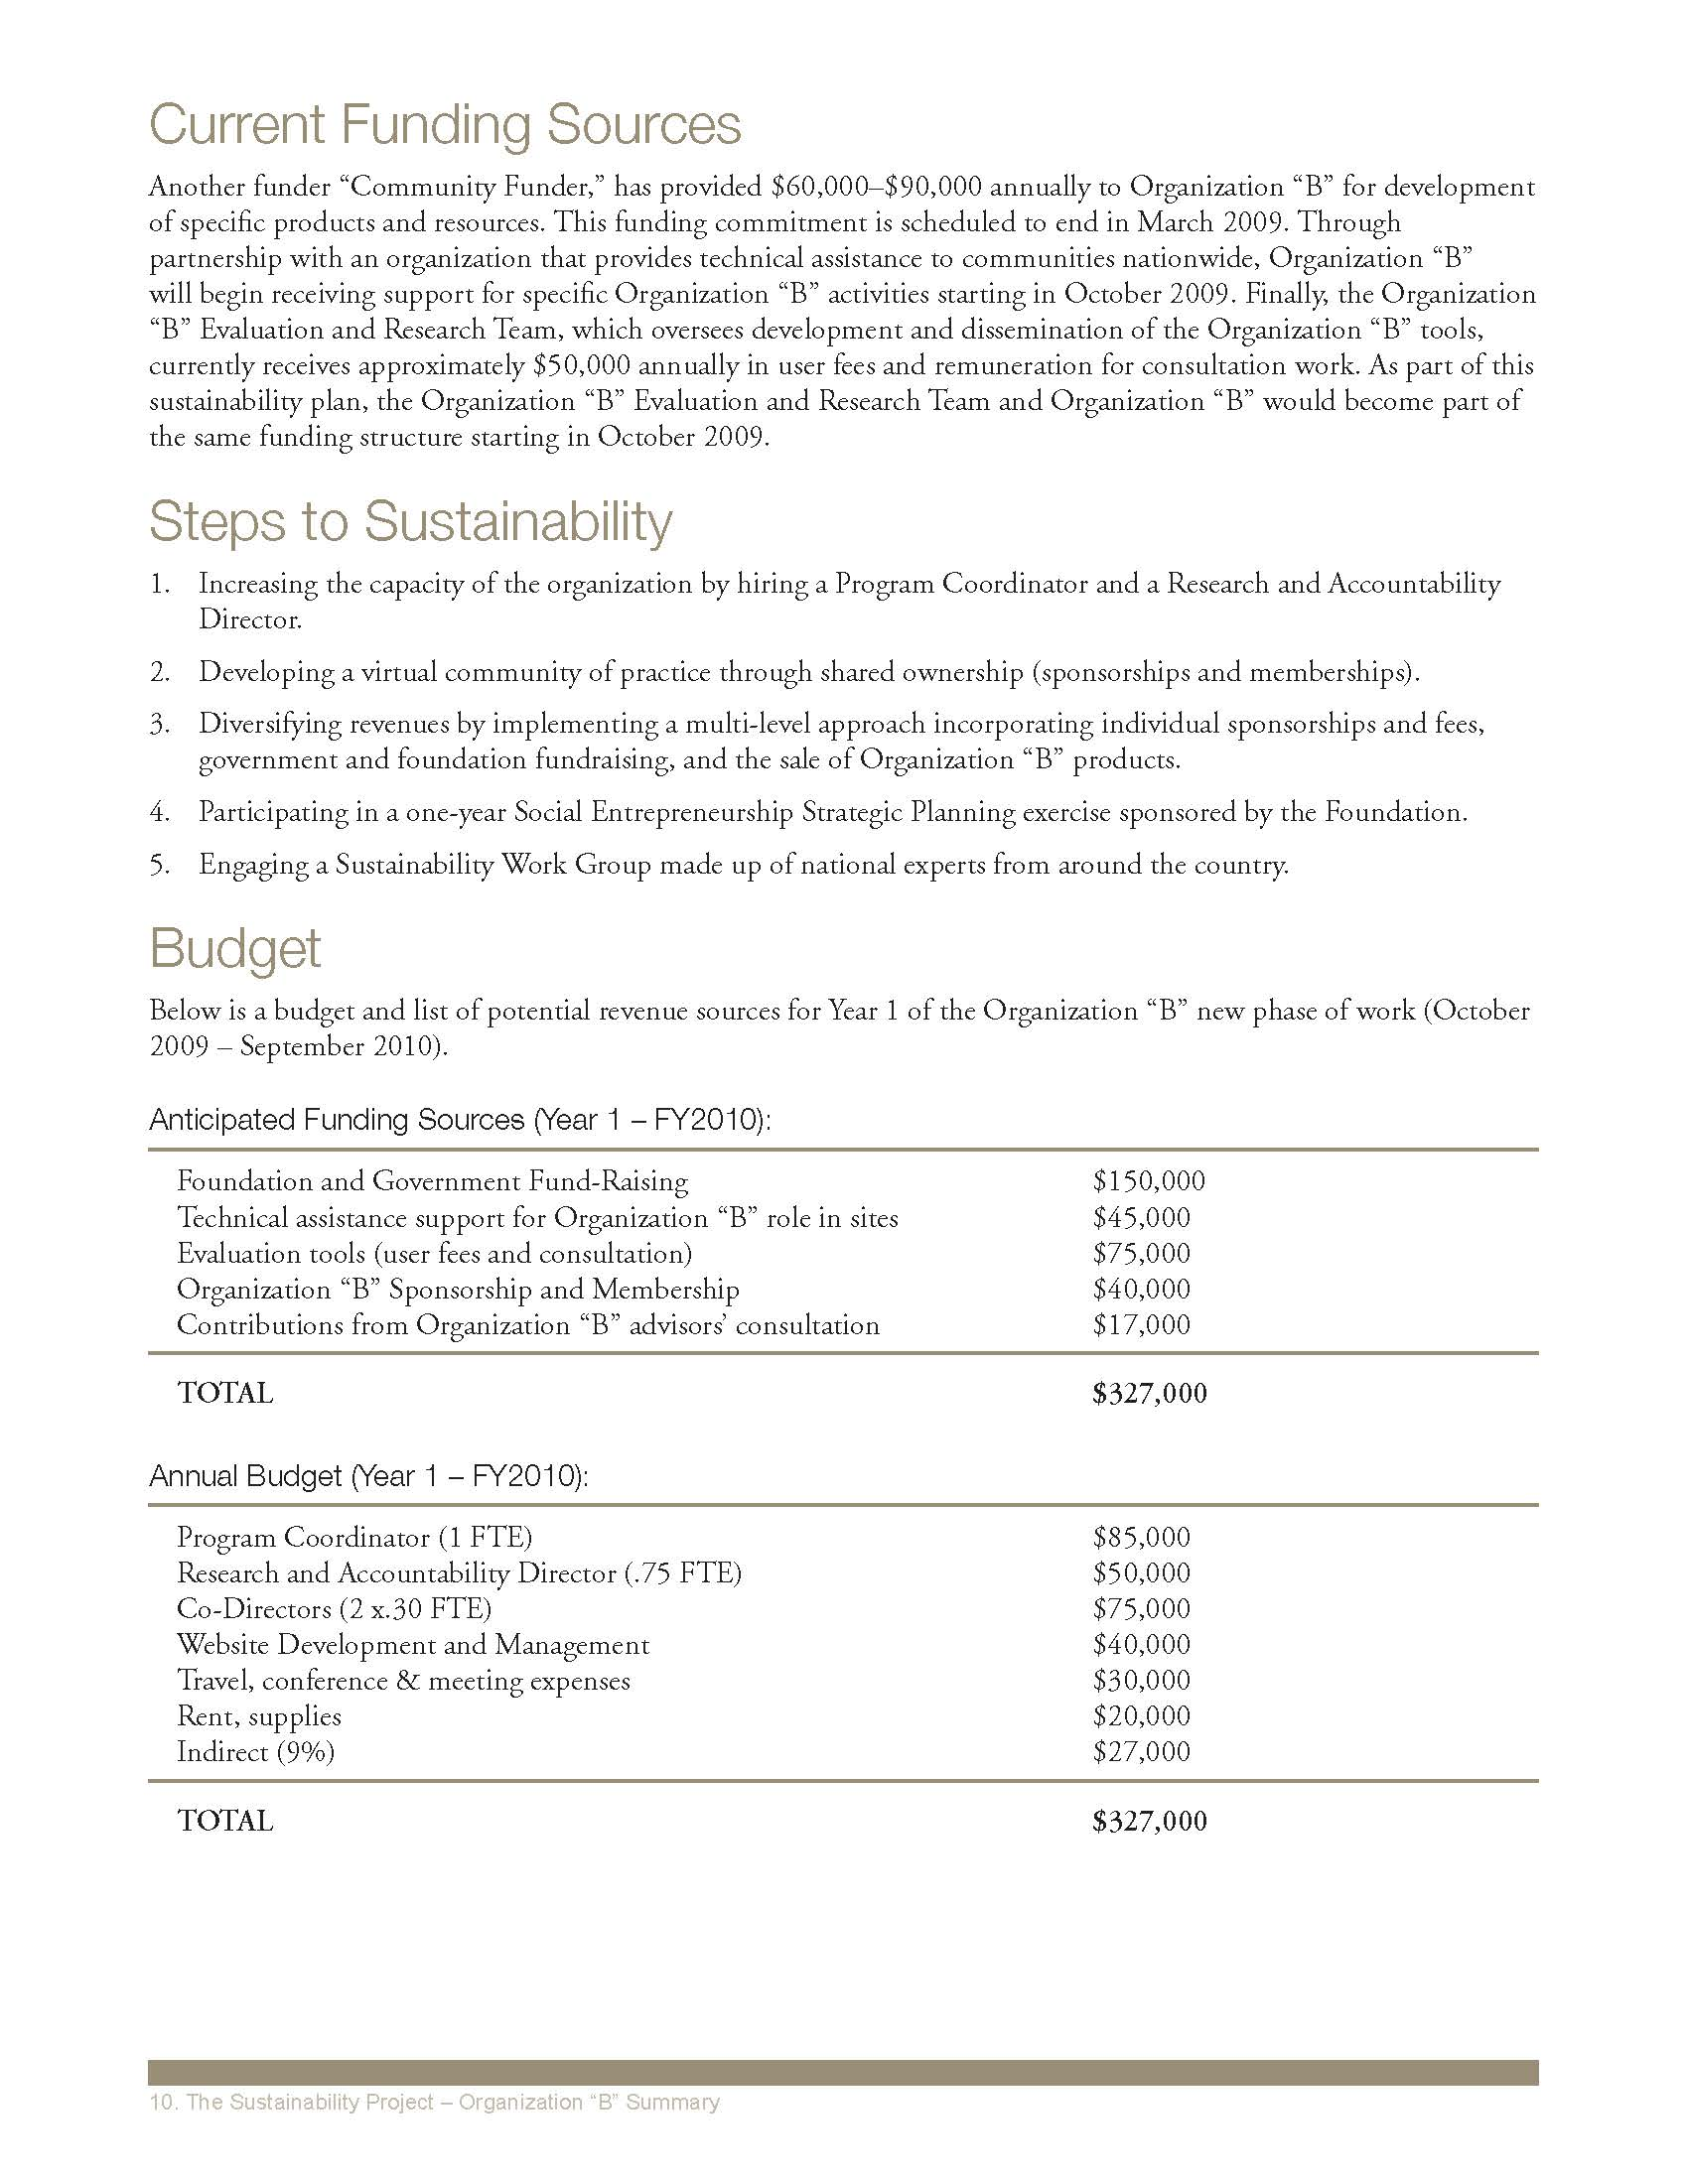 The Sustainability Project_Page_10.jpg